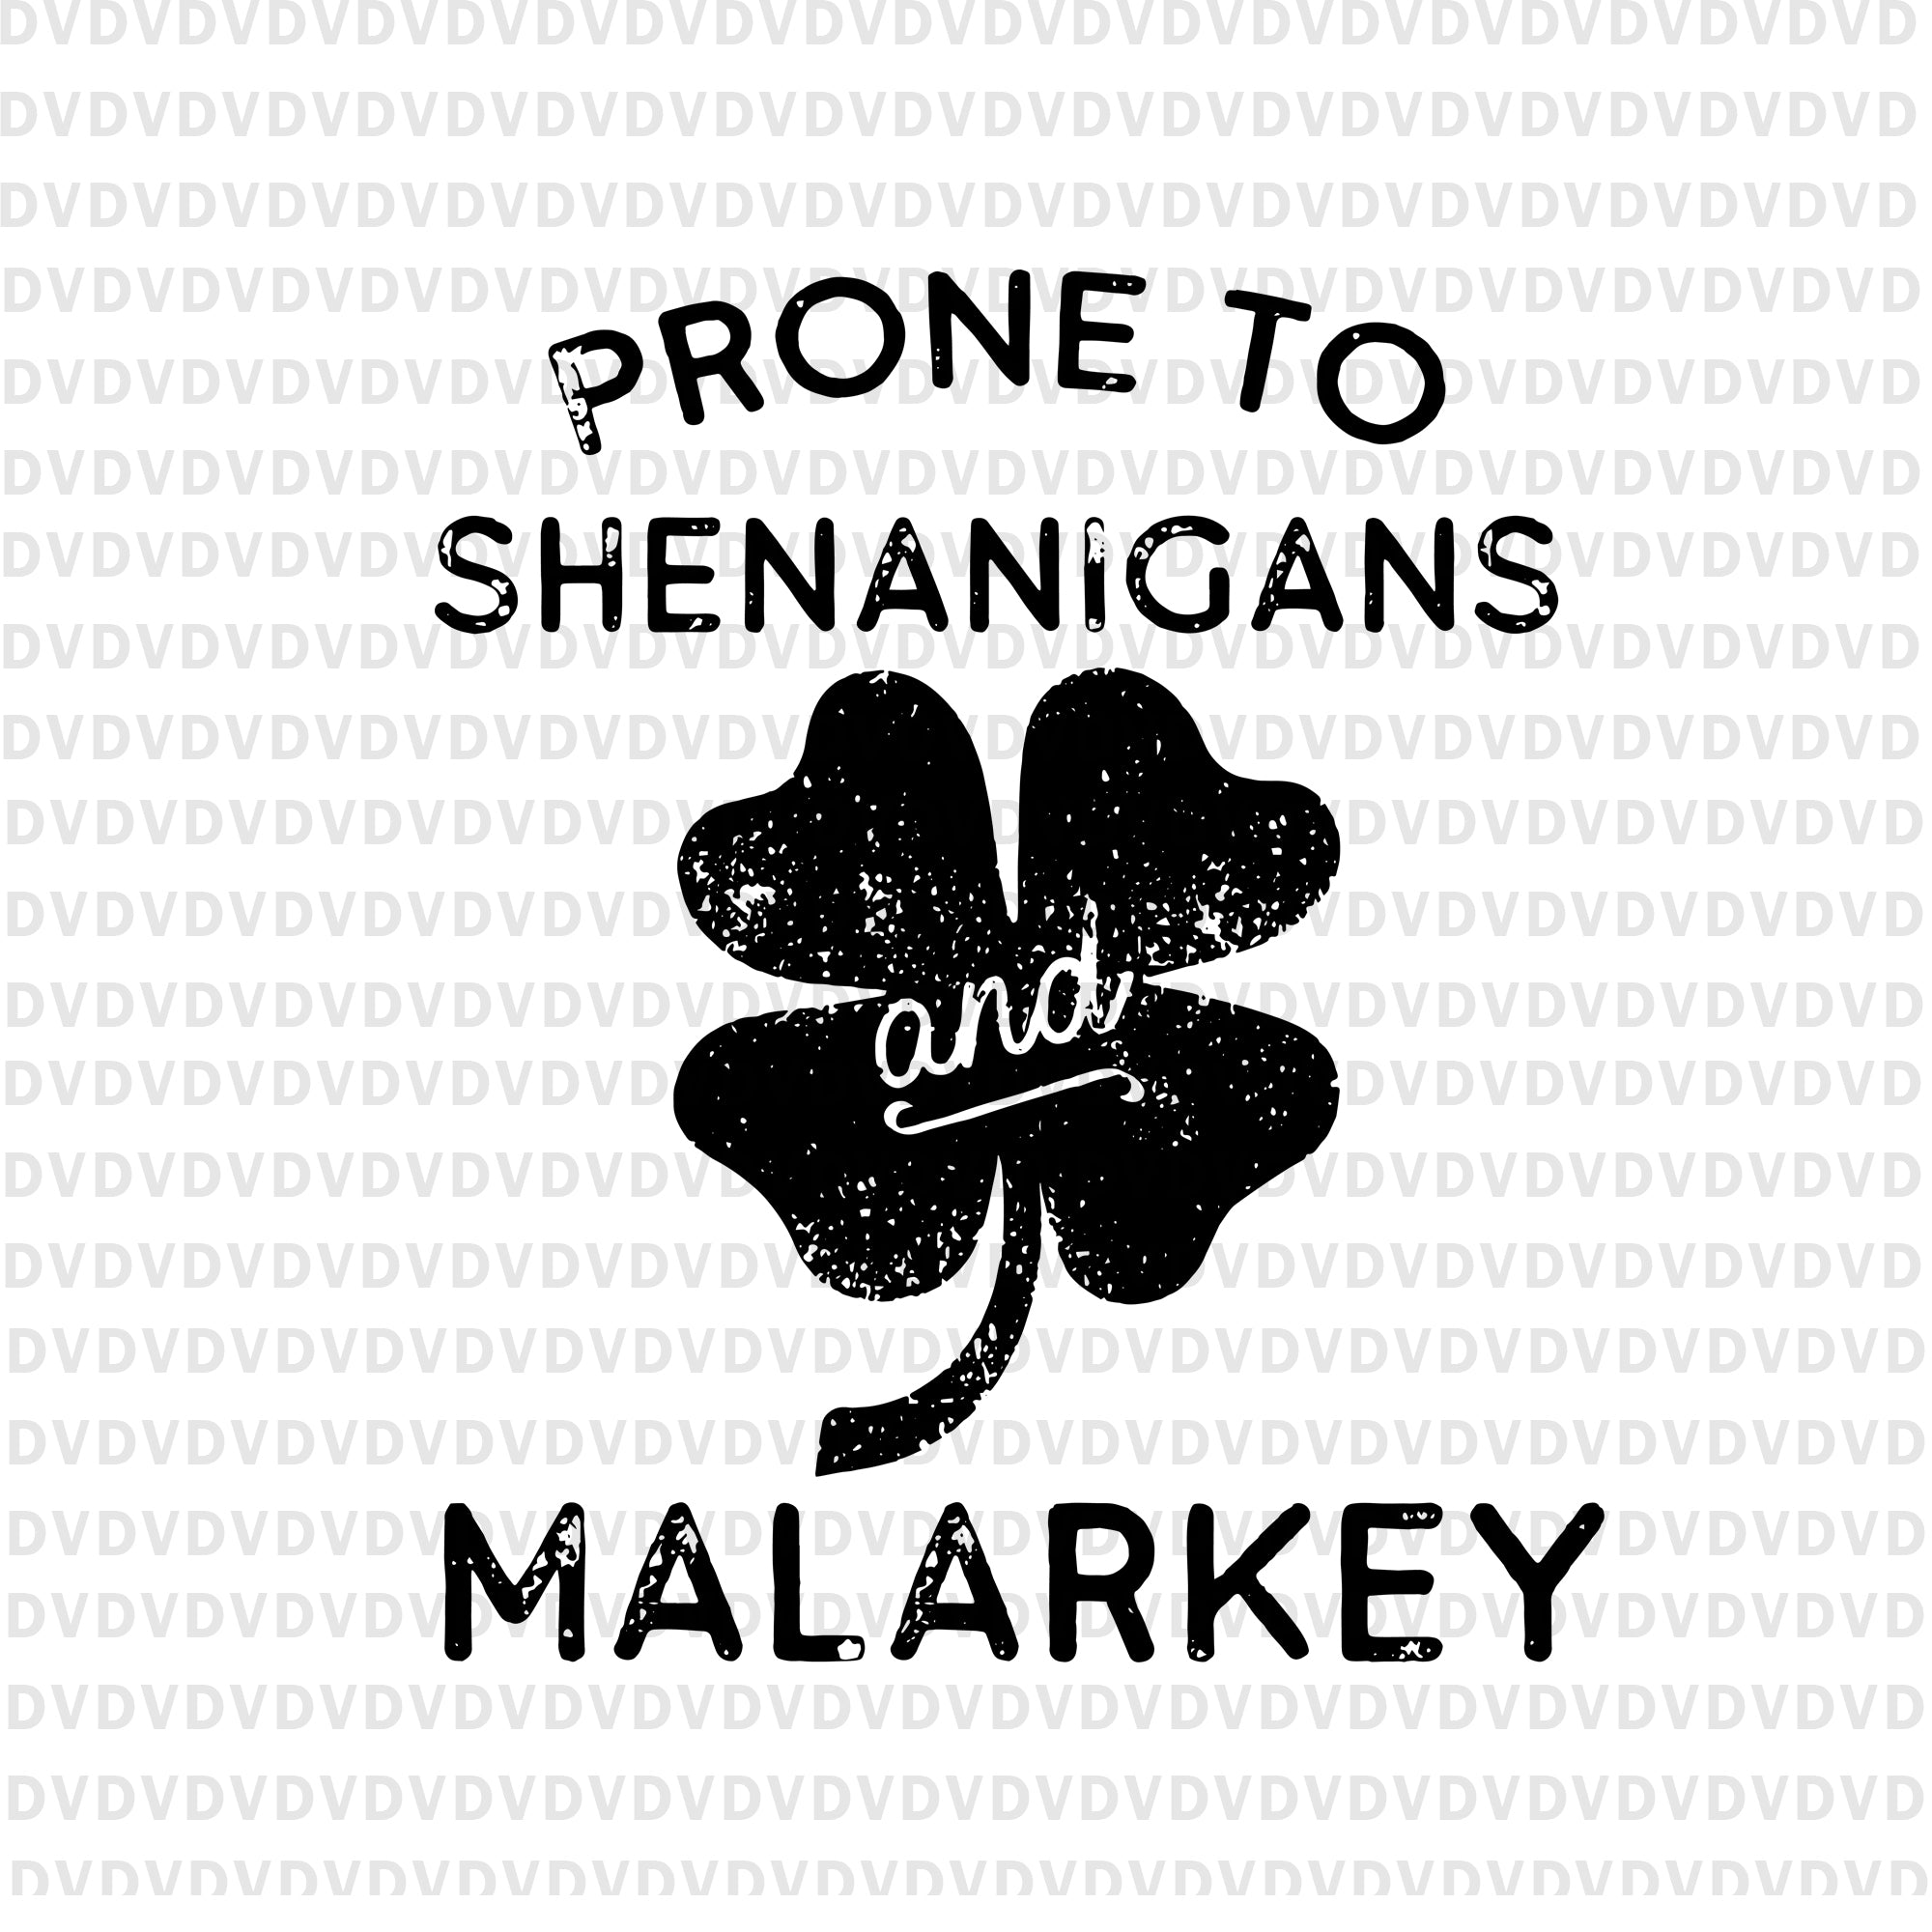 Prone to Shenanigans and Malarkey svg , Shenanigator svg, Prone to Shenanigans and Malarkey, Shenanigator st patrick day svg, st patrick day svg, patrick day